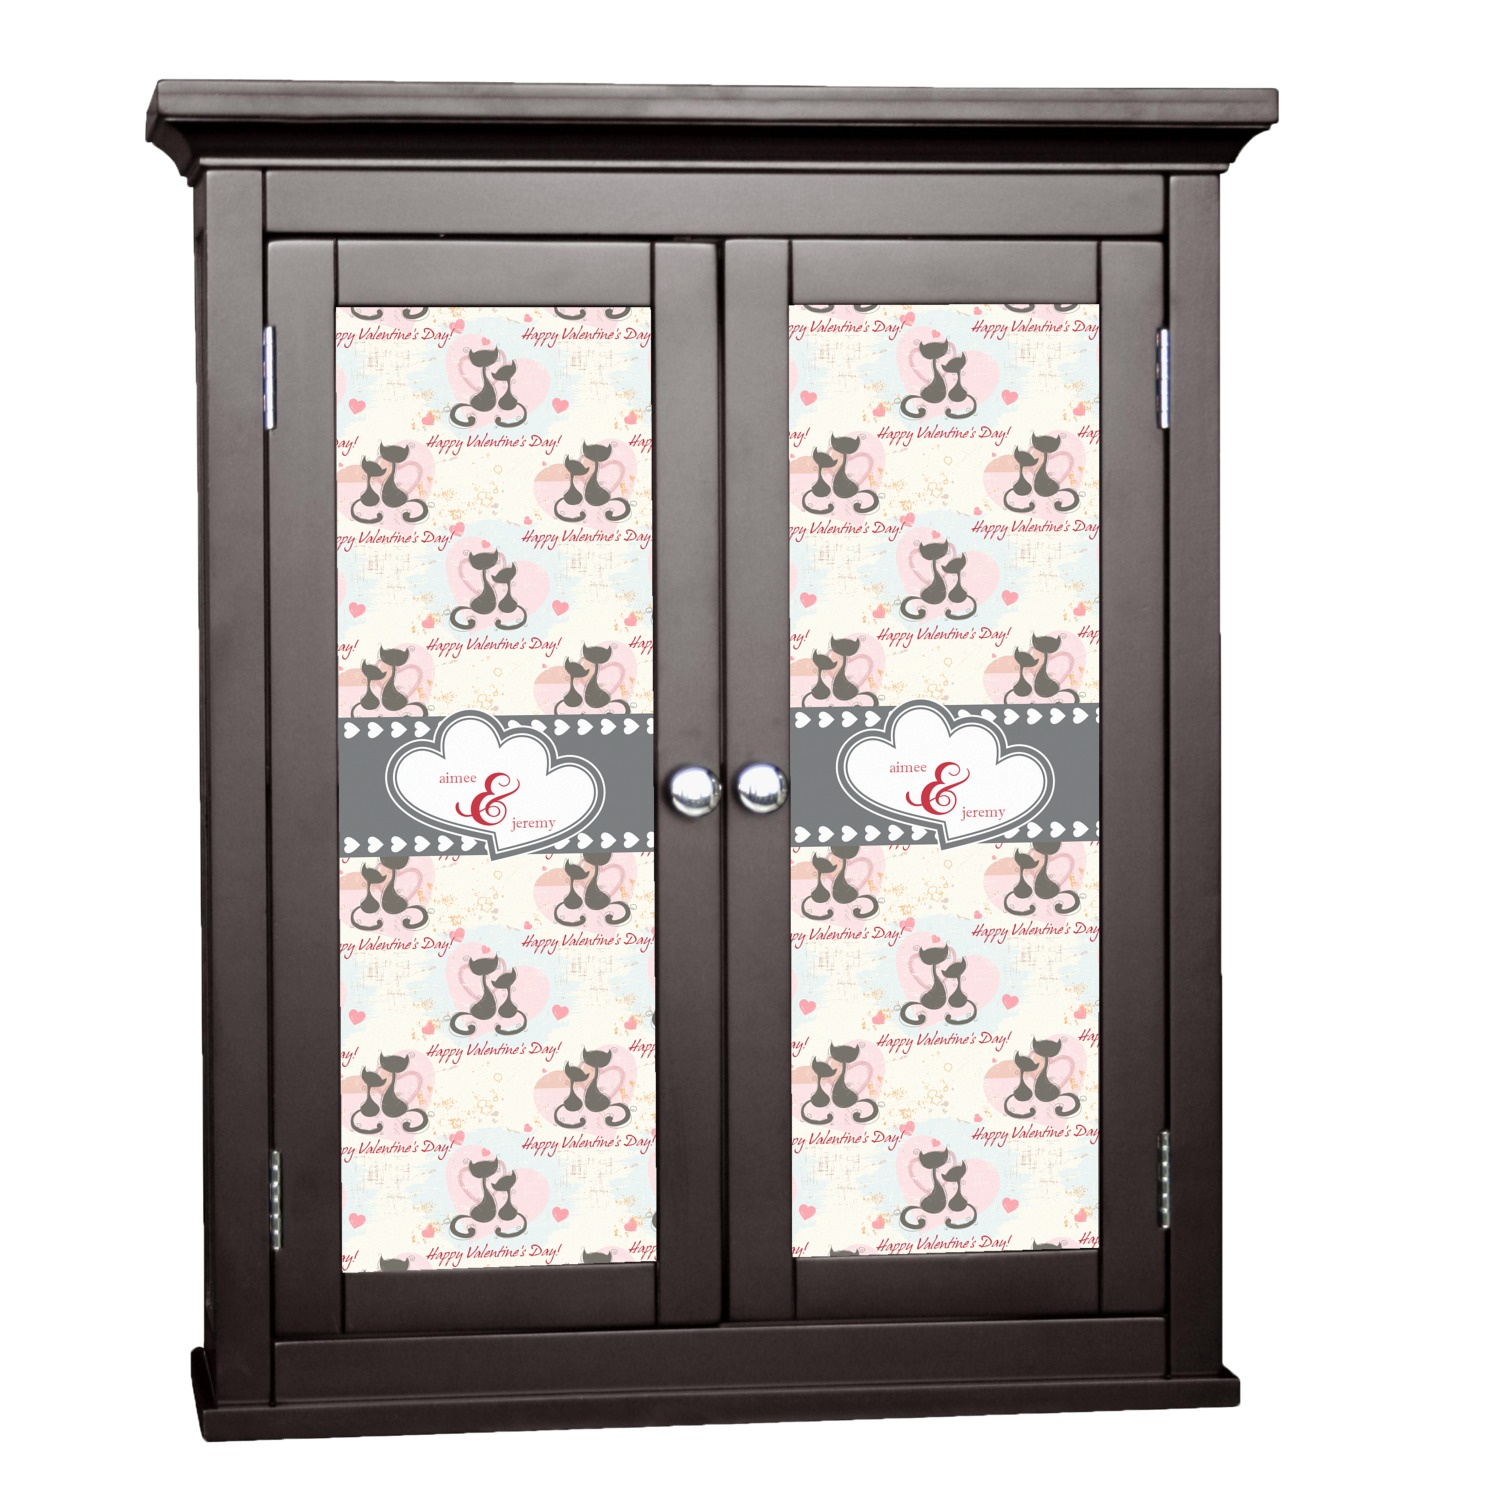 Cats in love cabinet decal large personalized for Kitchen cabinets lowes with how to make decal stickers